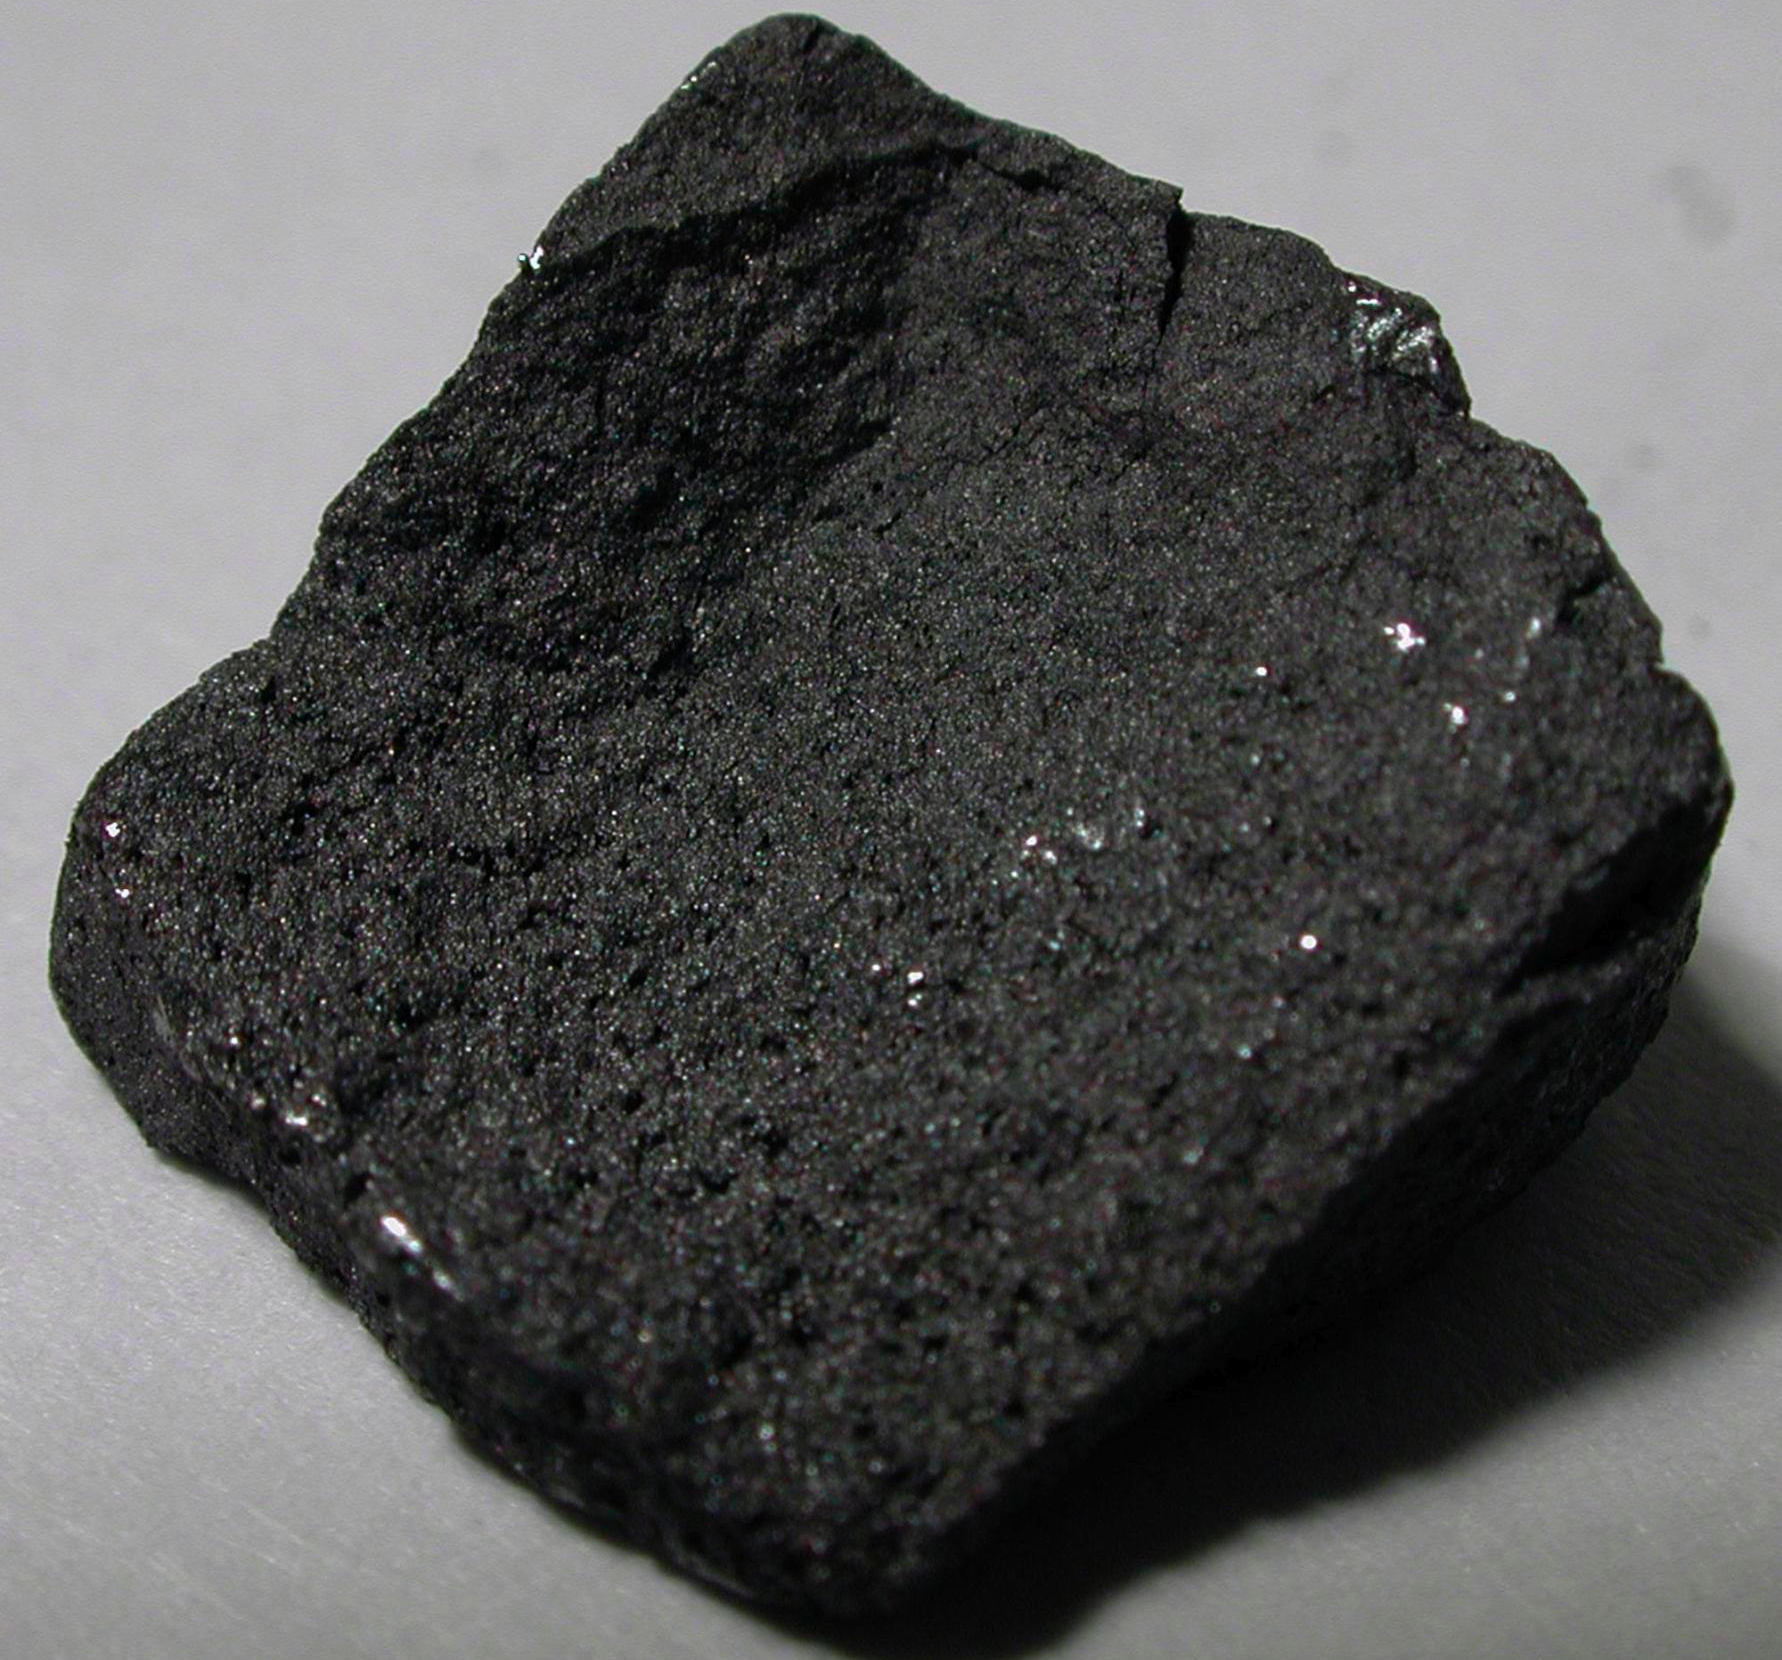 An image of the mineral Selenium